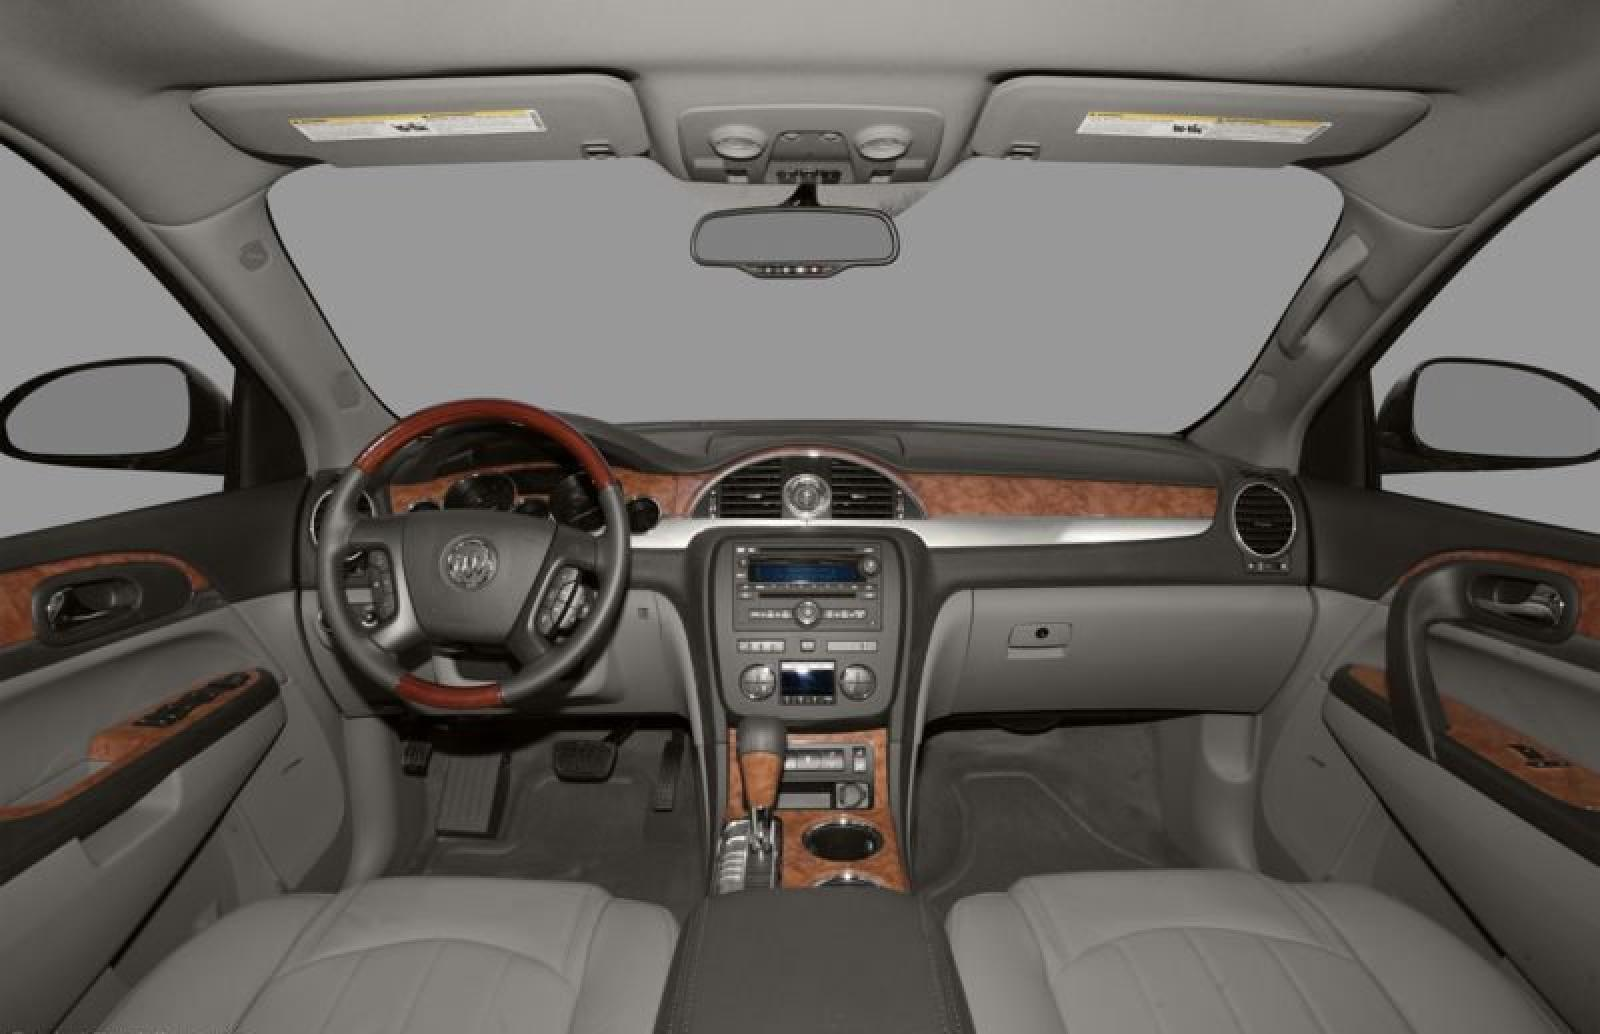 large of ca intuitive view s suv the enclave luxury full canada buick crossover technology technologies size available